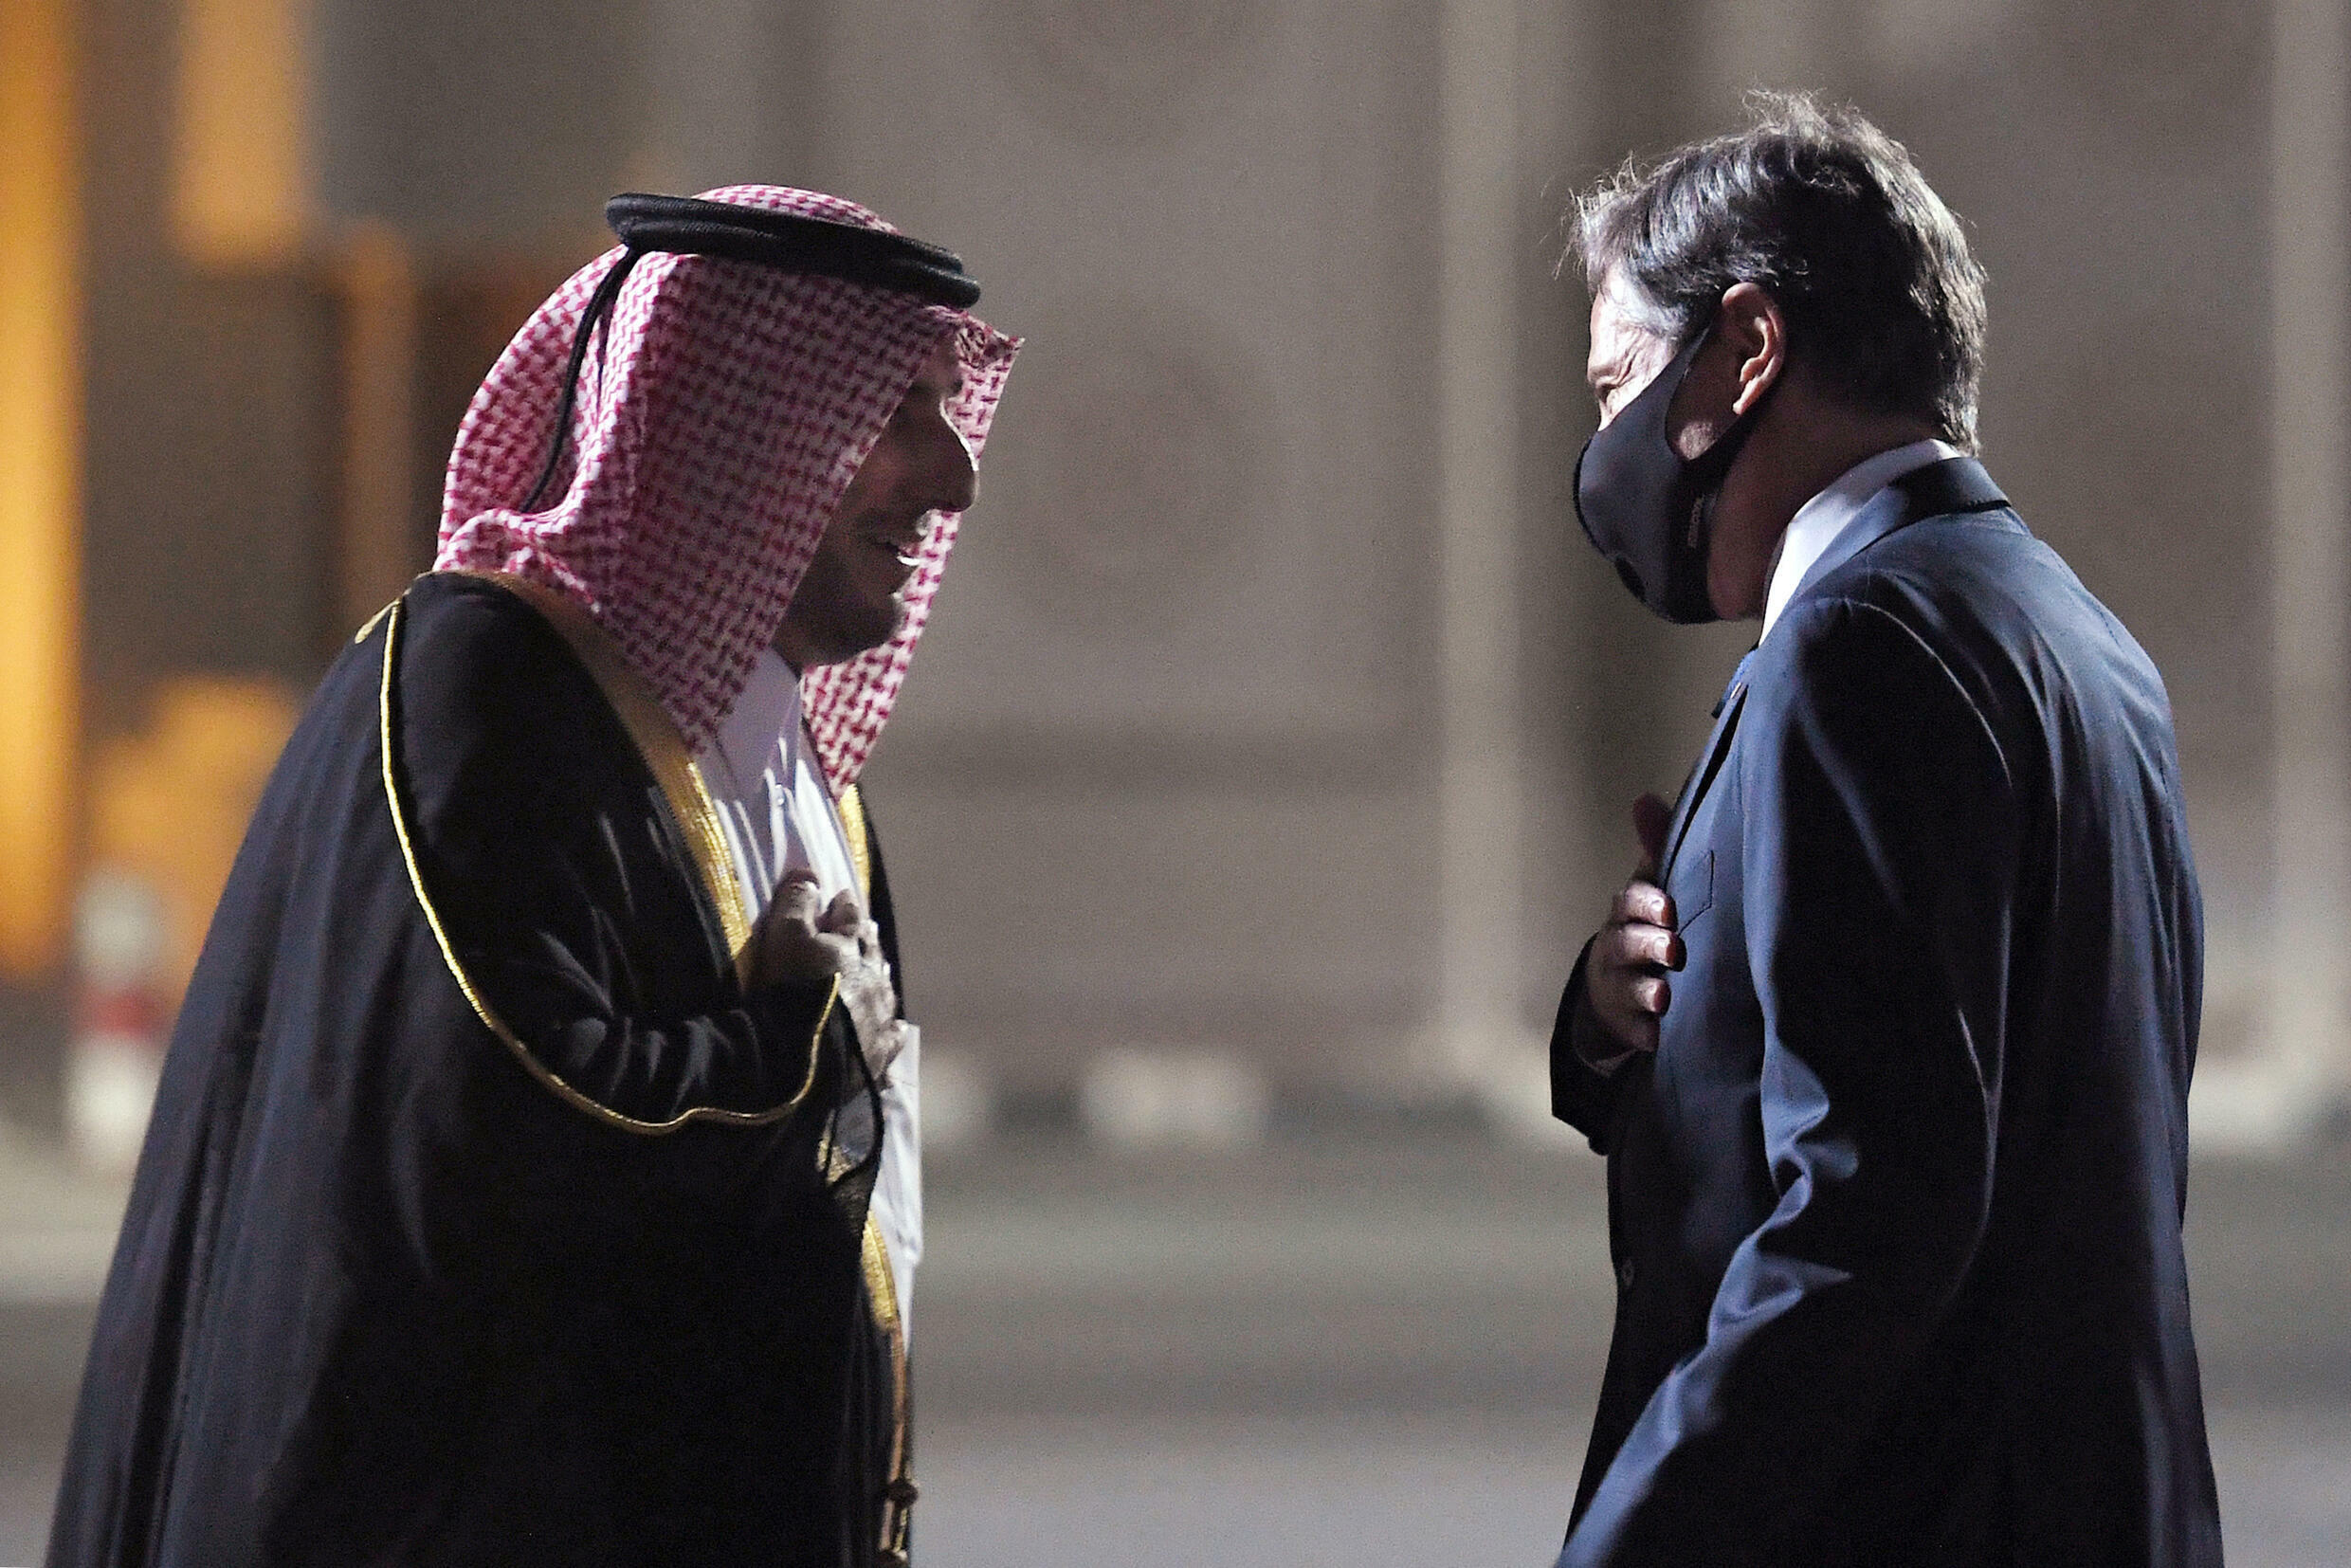 Secretary of State Antony Blinken (R), seen here being greeted by a Qatari diplomat upon his arrival in the Gulf state, is the most senior US official to visit the region since the Taliban's lightning takeover of Afghanistan on August 15